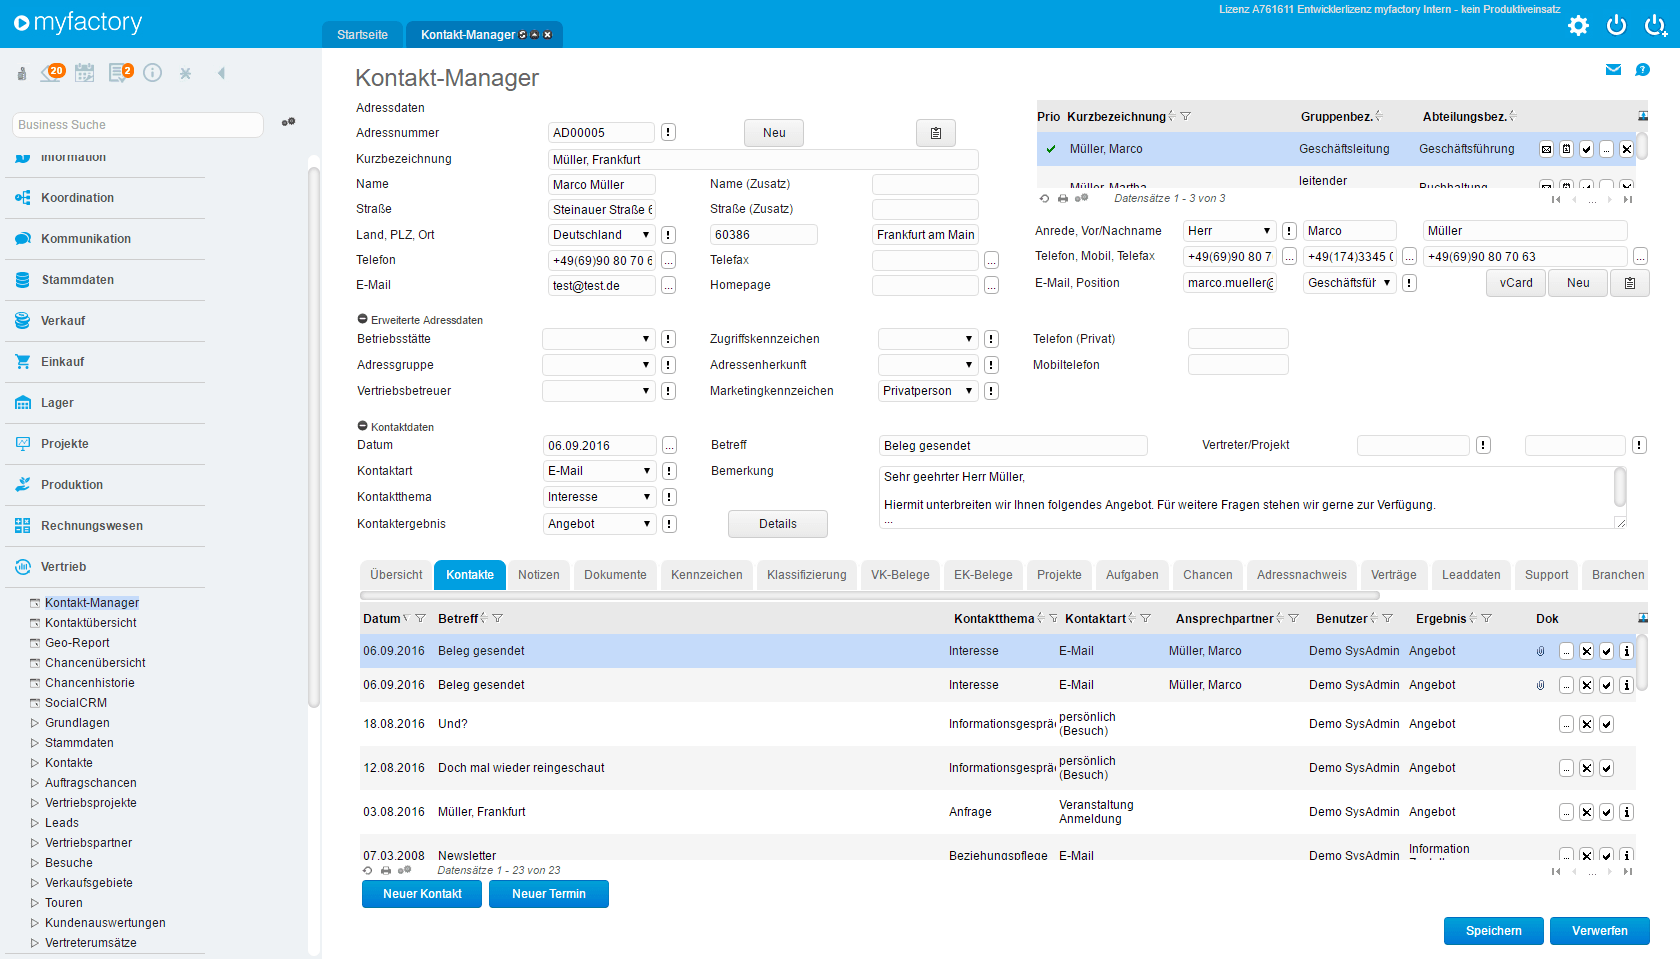 myfactory Kontakt-Manager